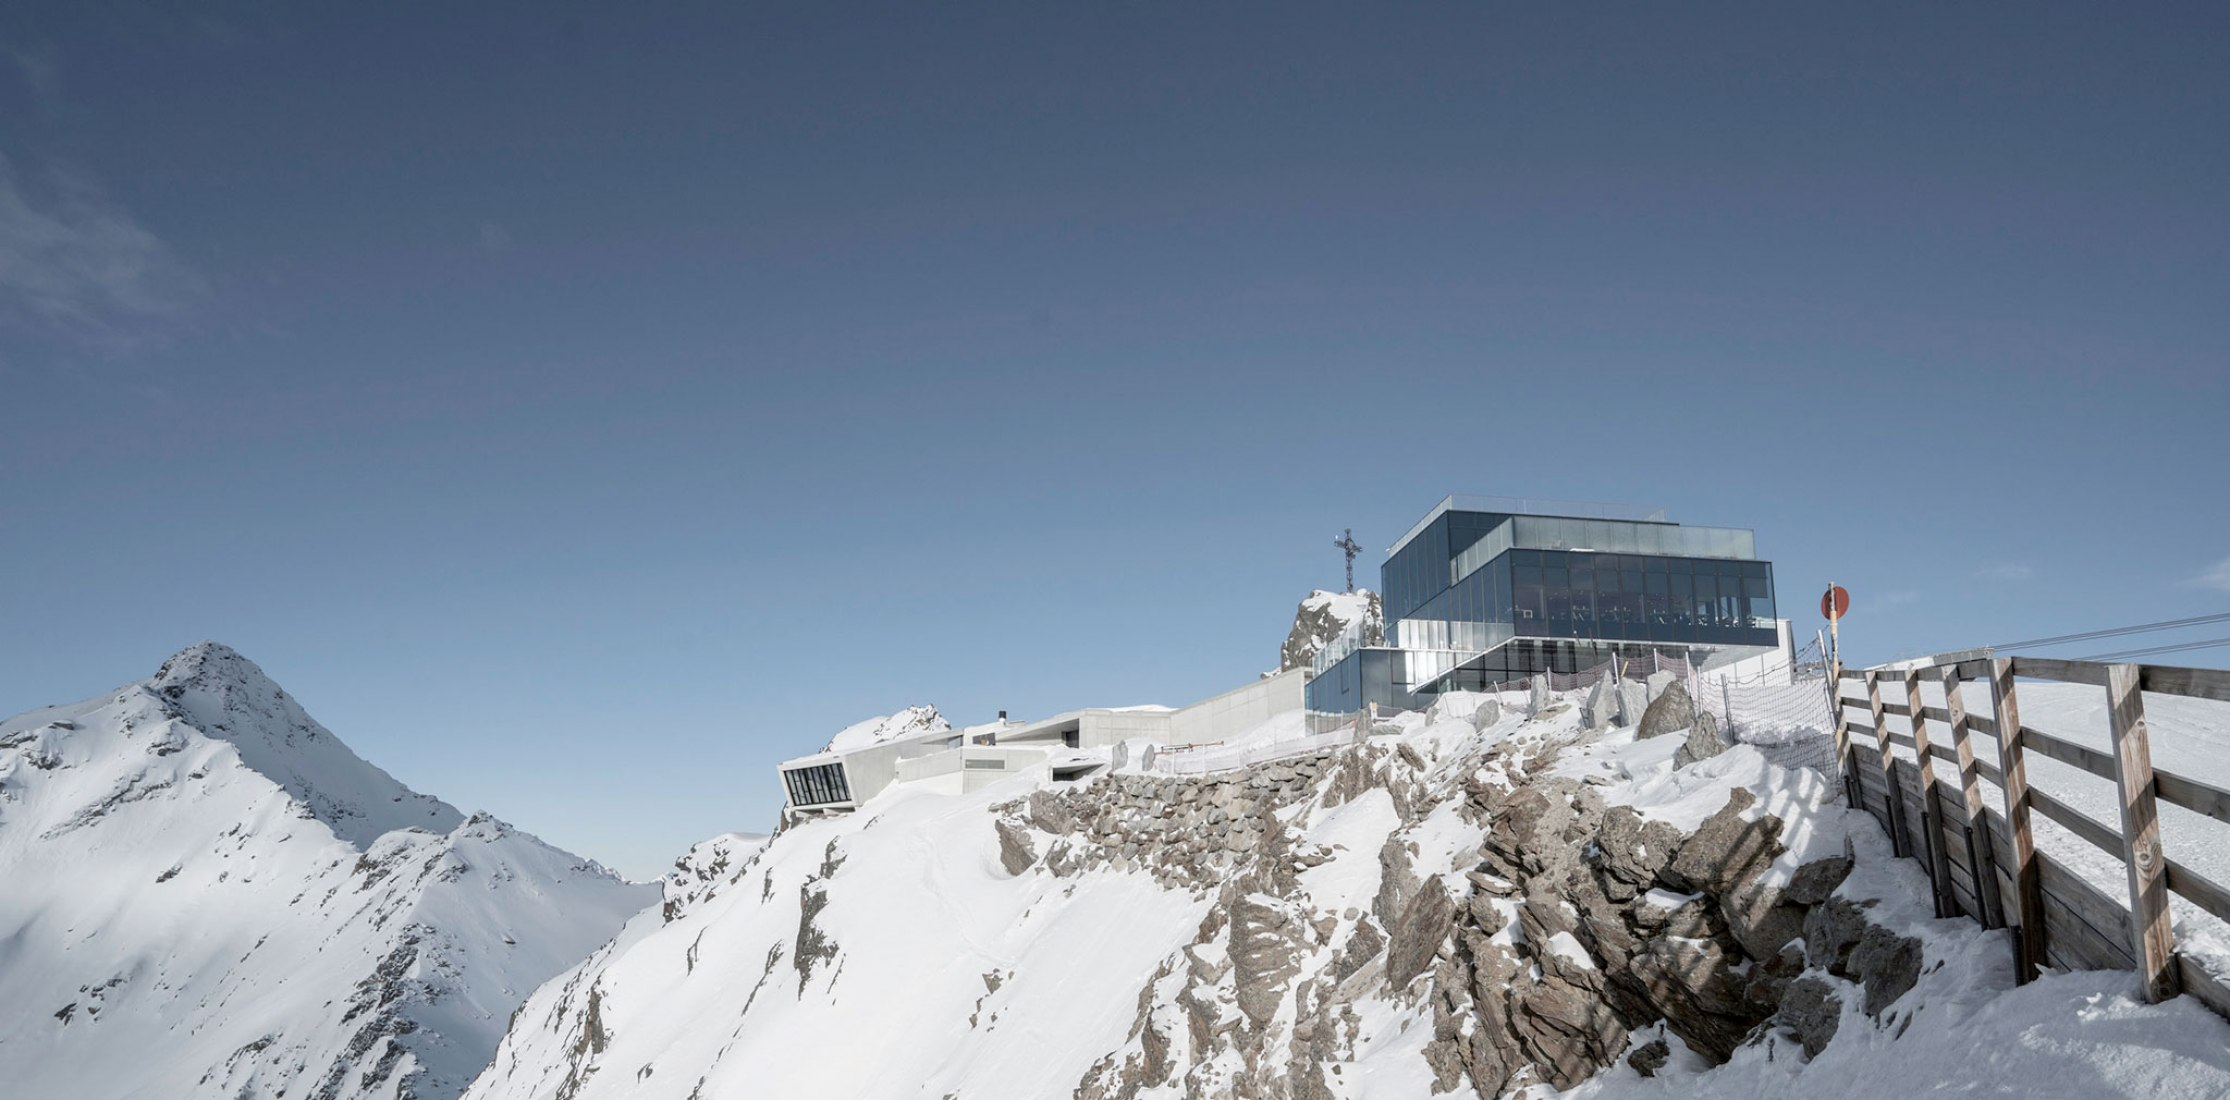 Overview. Exterior view of the Bond 007 Elements museum, in the Austrian Alps. Photograph by Christoph Noesig, 007 ELEMENTS